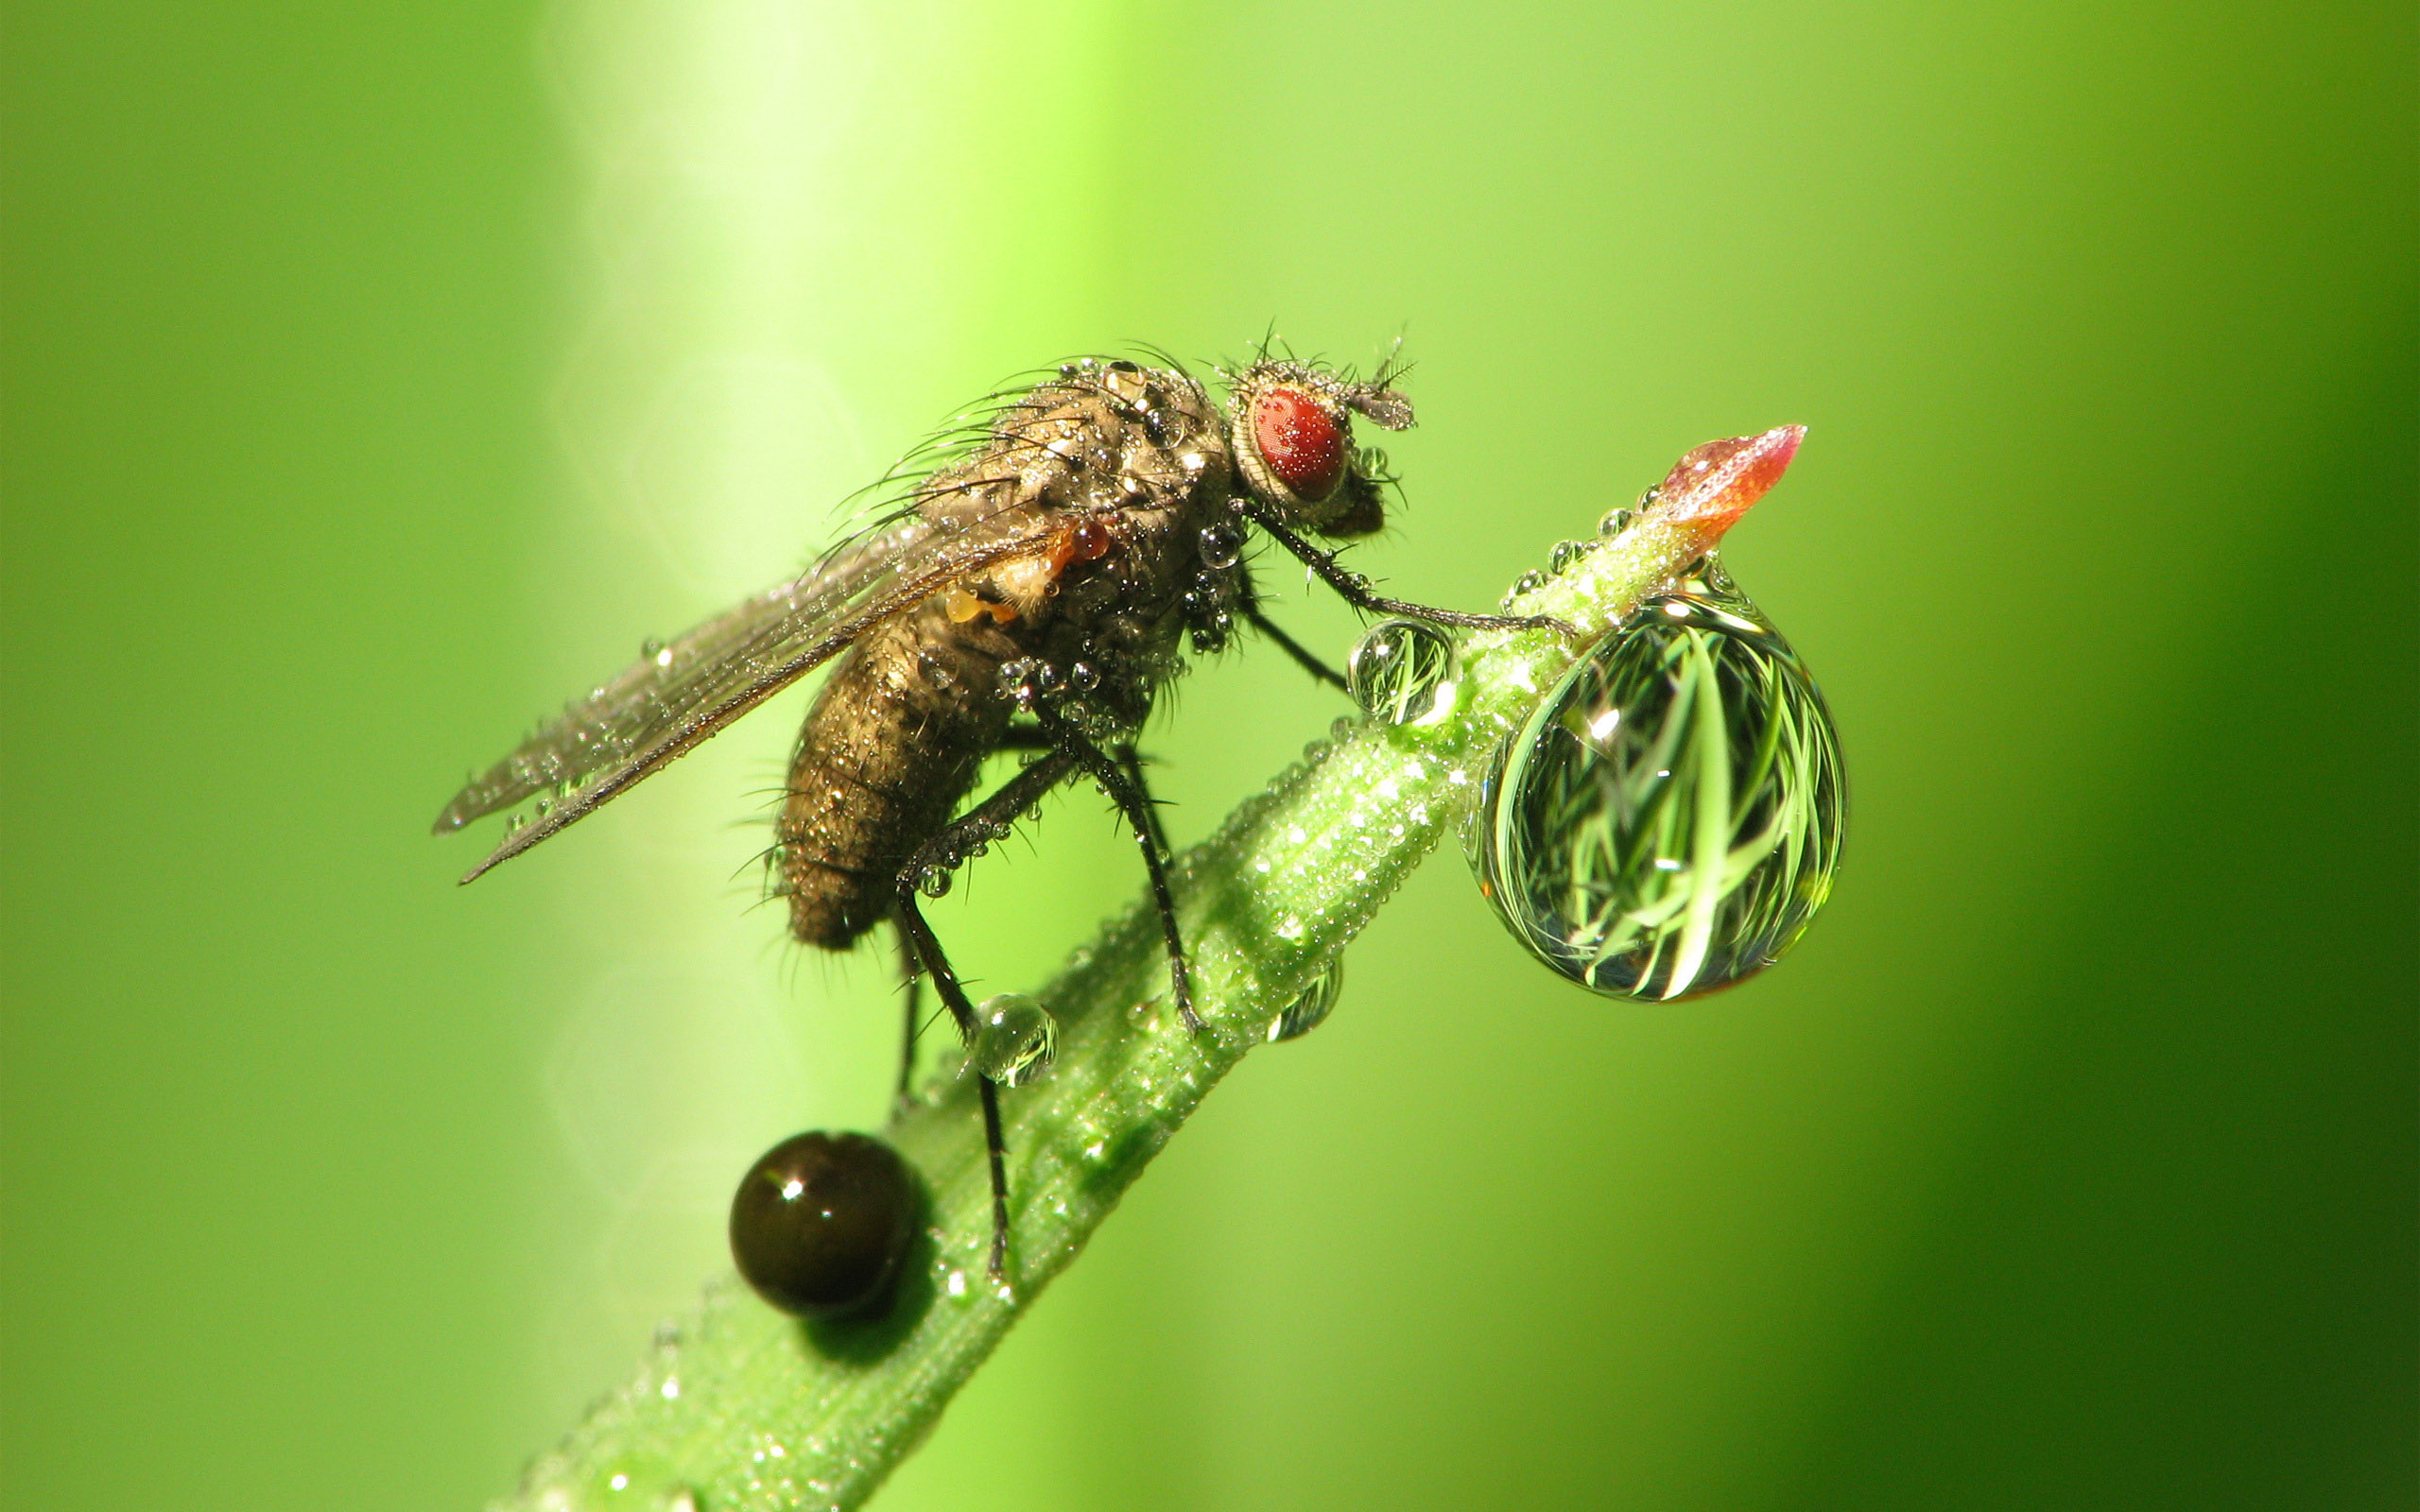 The fly with drops / 2560 x 1600 / Macro / Photography | MIRIADNA.COM